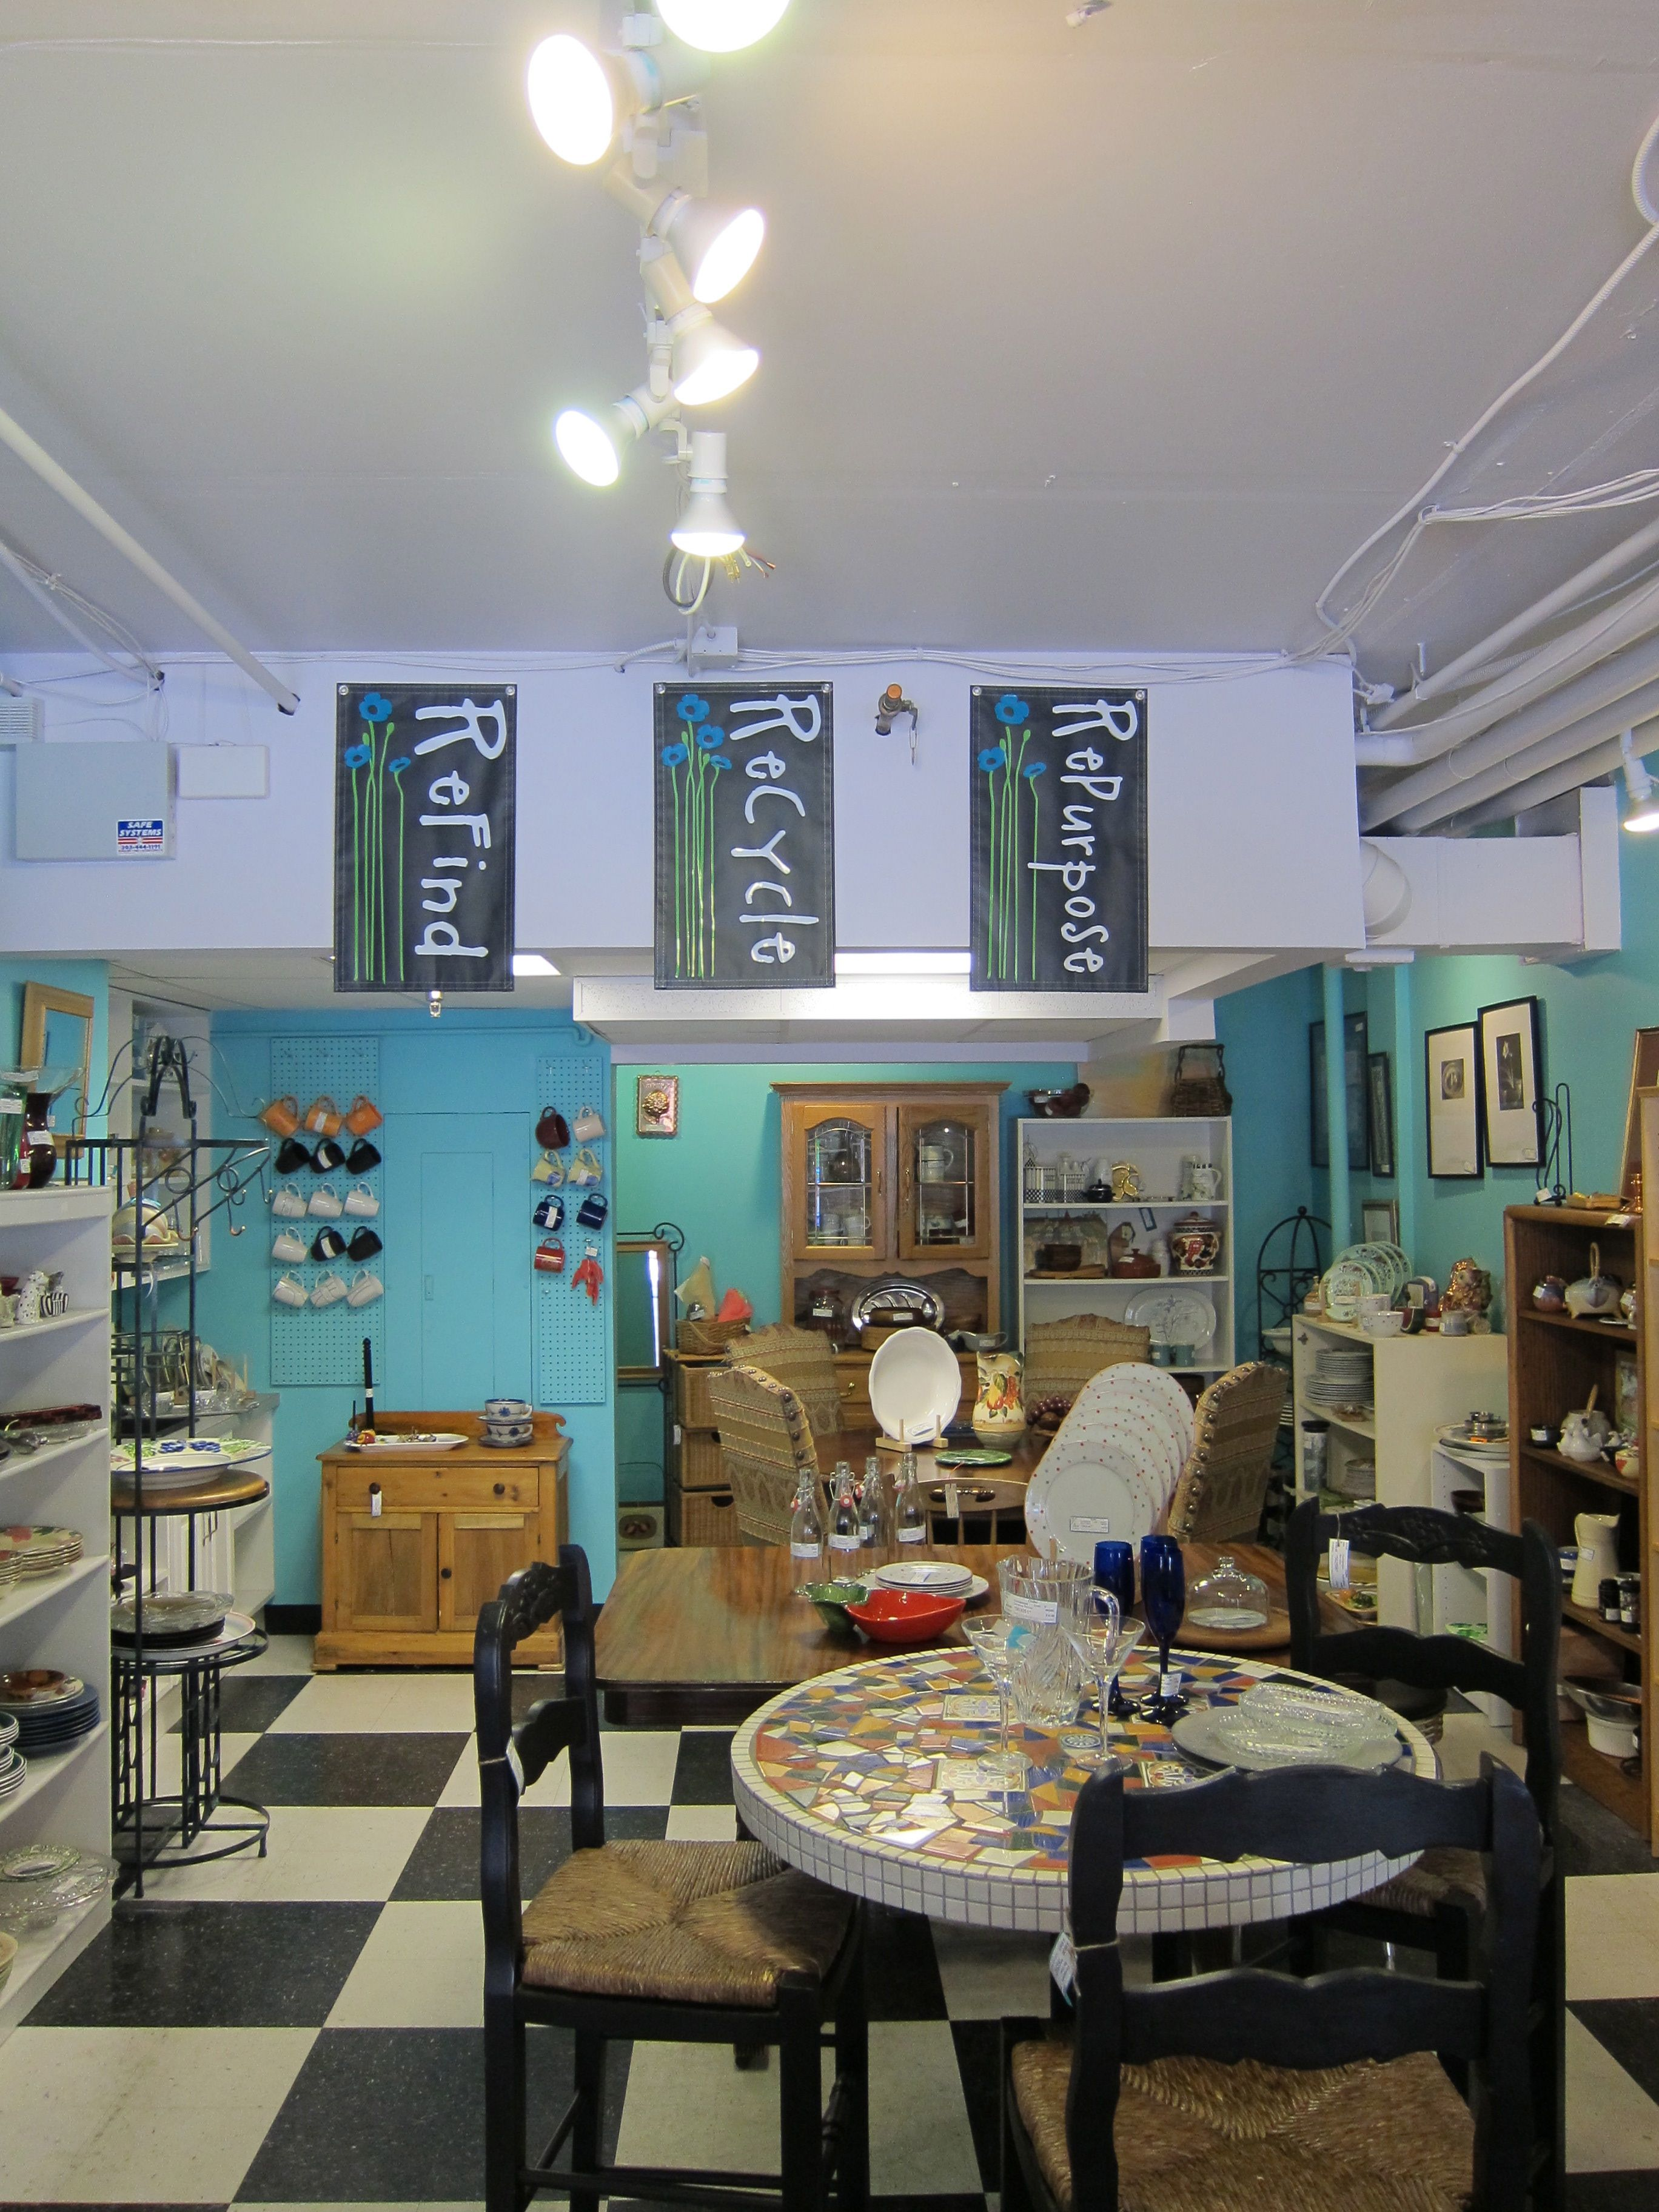 Refind Recycle Repurpose Clutter Consignment Furniture Cool